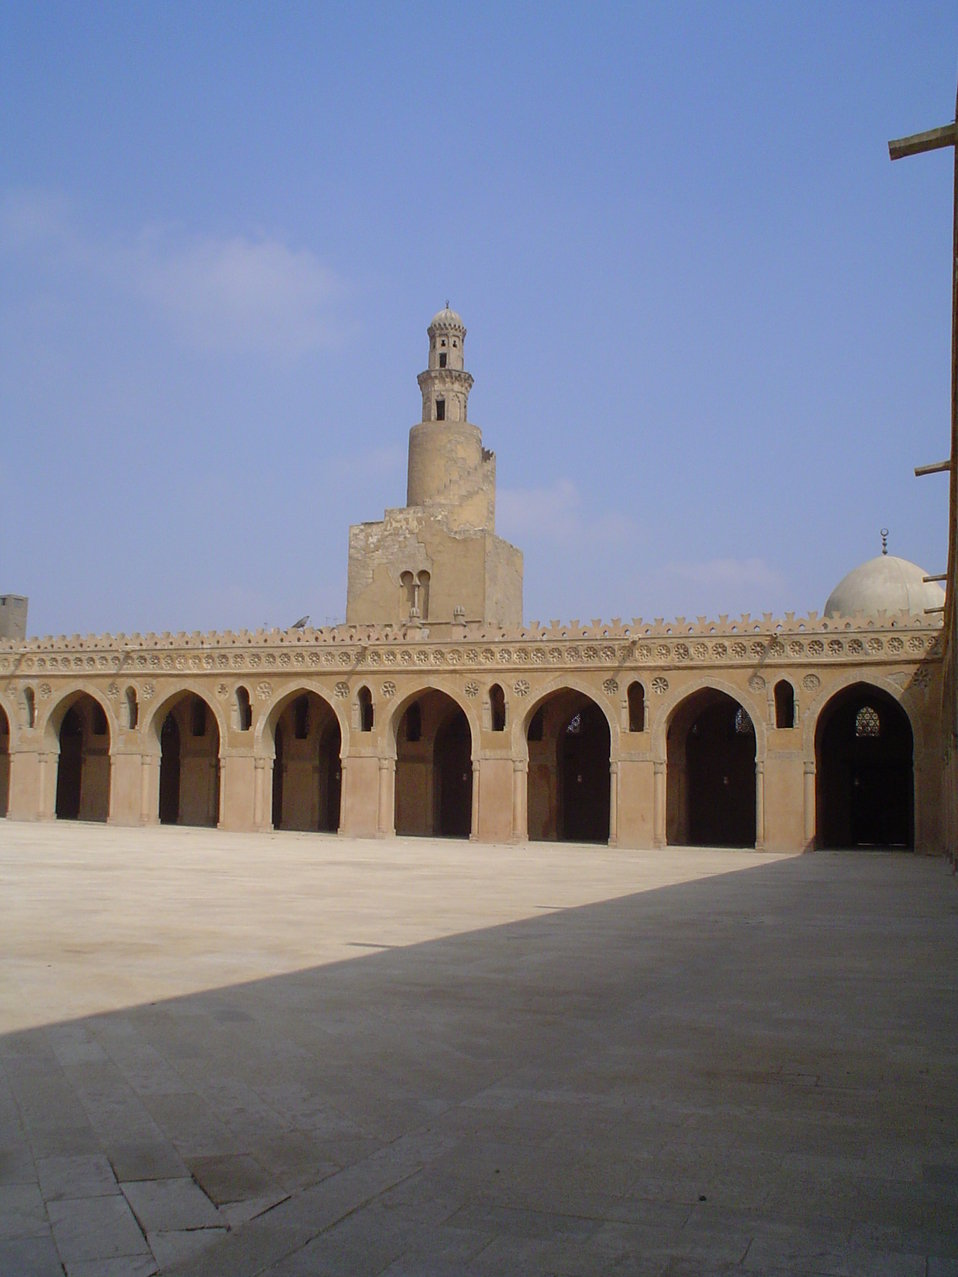 The Minaret of Ibn Tulun mosque in Cairo, Egypt.